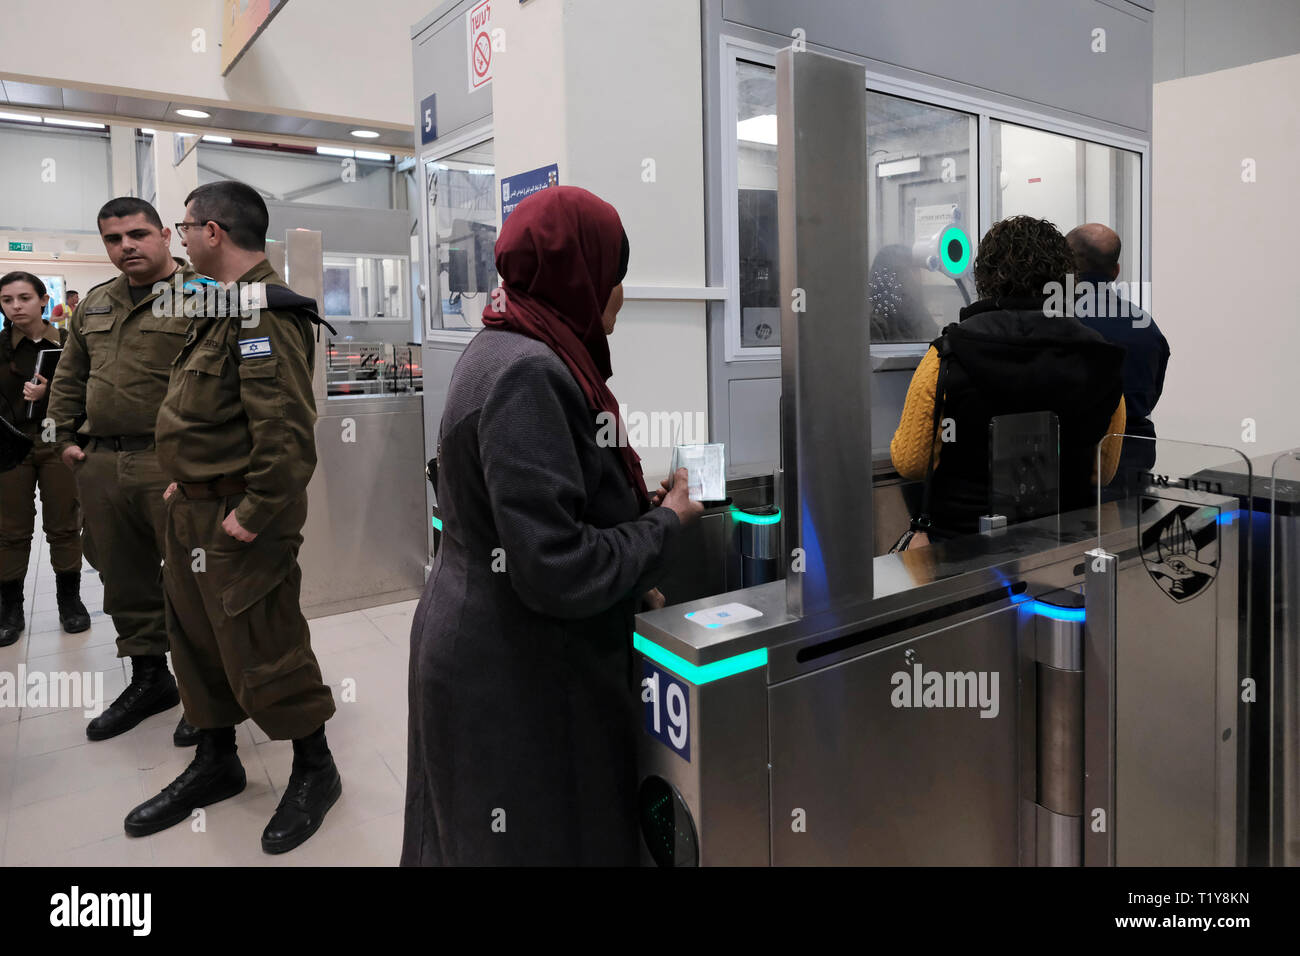 Qalandya, ISRAEL 28th March - A Palestinian woman on her way to Jerusalem crossing turnstile gate with bio-metric system at the newly renovated Kalandia or Qalandiya Checkpoint between Jerusalem and Ramallah on 28 March 2019. The Qalandiya Checkpoint's $11 million renovation was carried out in order to enhance the commute of thousands of Palestinians every day, mostly with the help of new identification stations with improved technology. Credit: Eddie Gerald/Alamy Live News - Stock Image